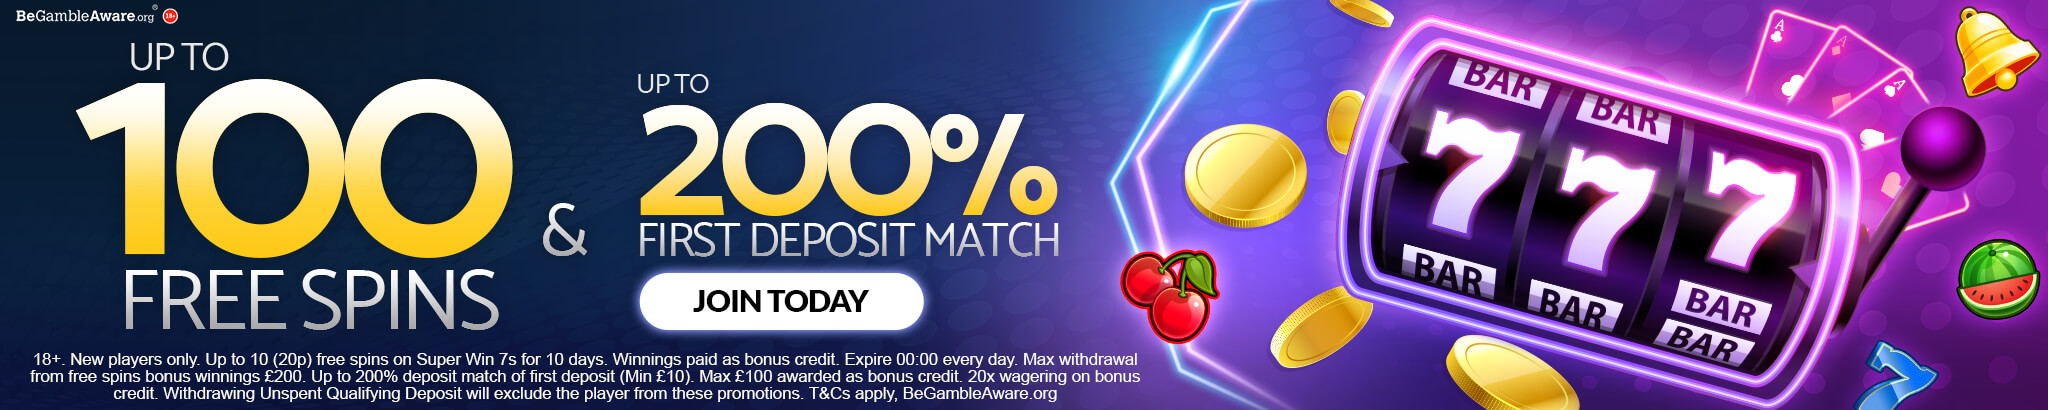 Get up to 100 free spins and up to 200% first deposit match